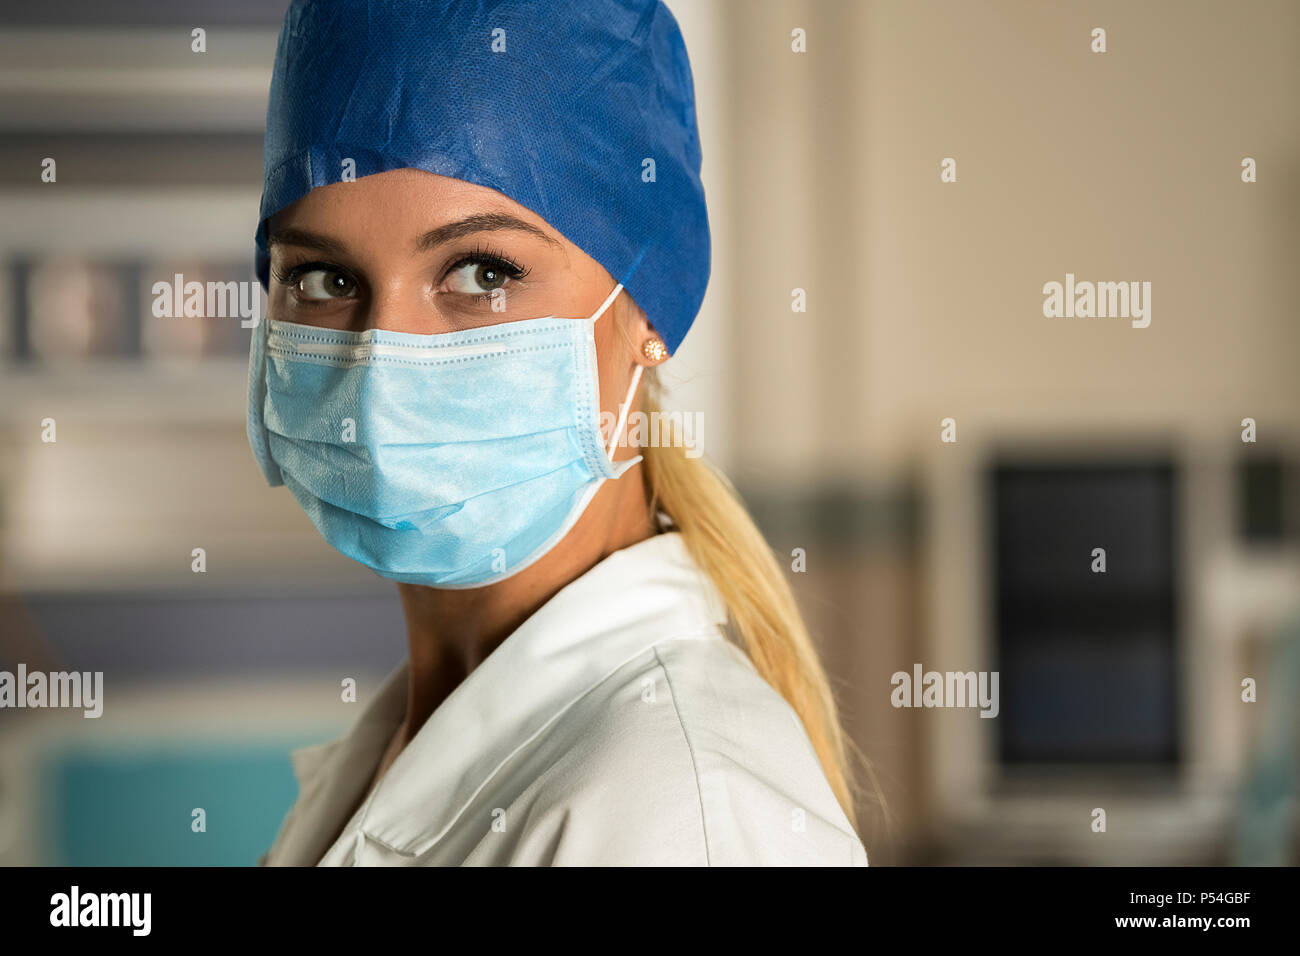 Blonde young nurse doctor in ICU ER OR room - Stock Image